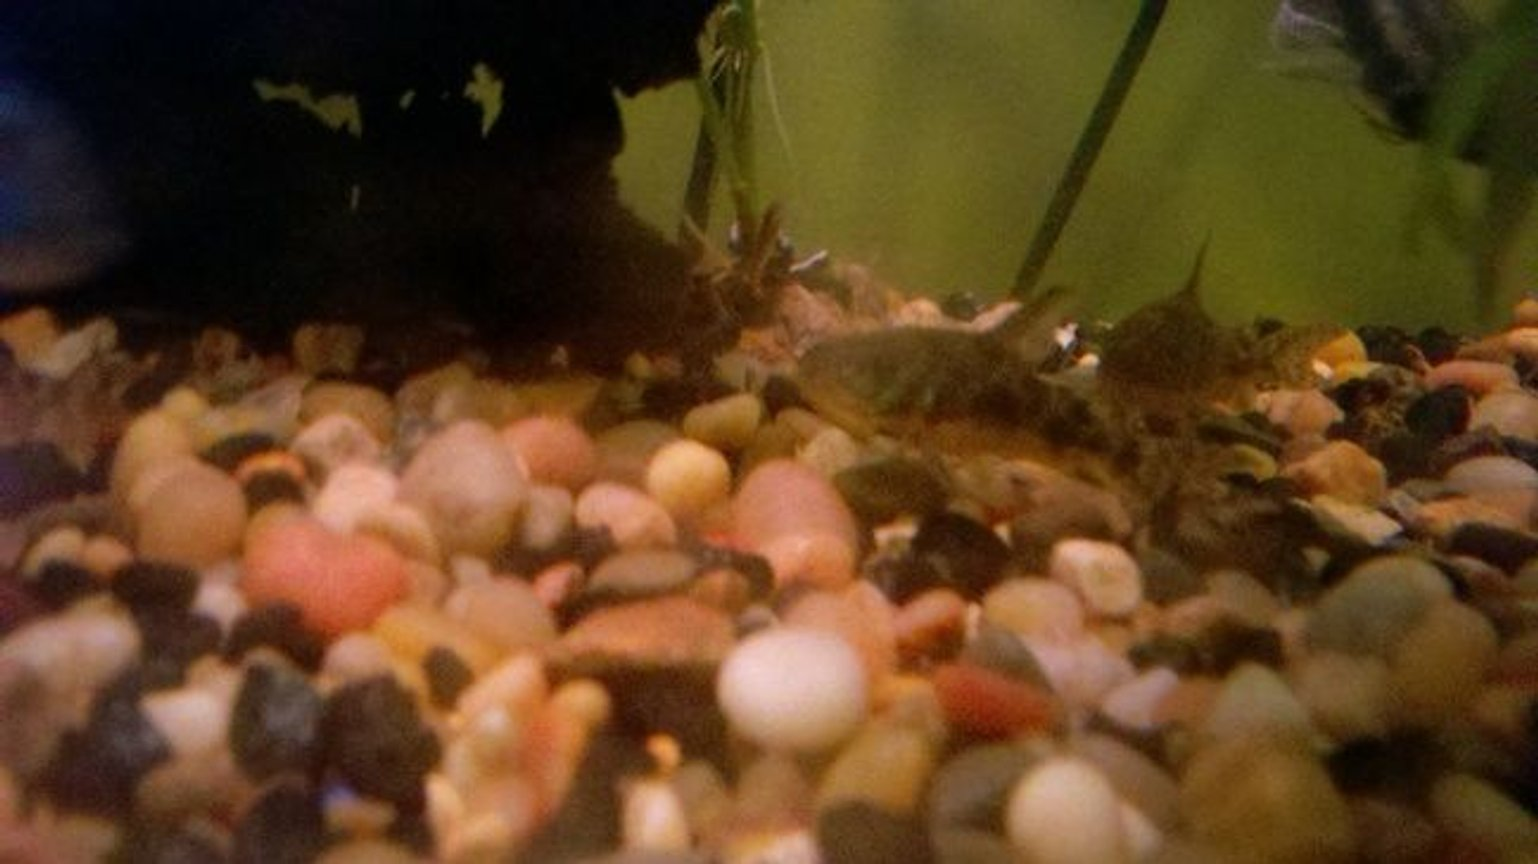 freshwater fish - corydoras paleatus - peppered cory cat stocking in 39 gallons tank - Peppered Cory Cat II & III